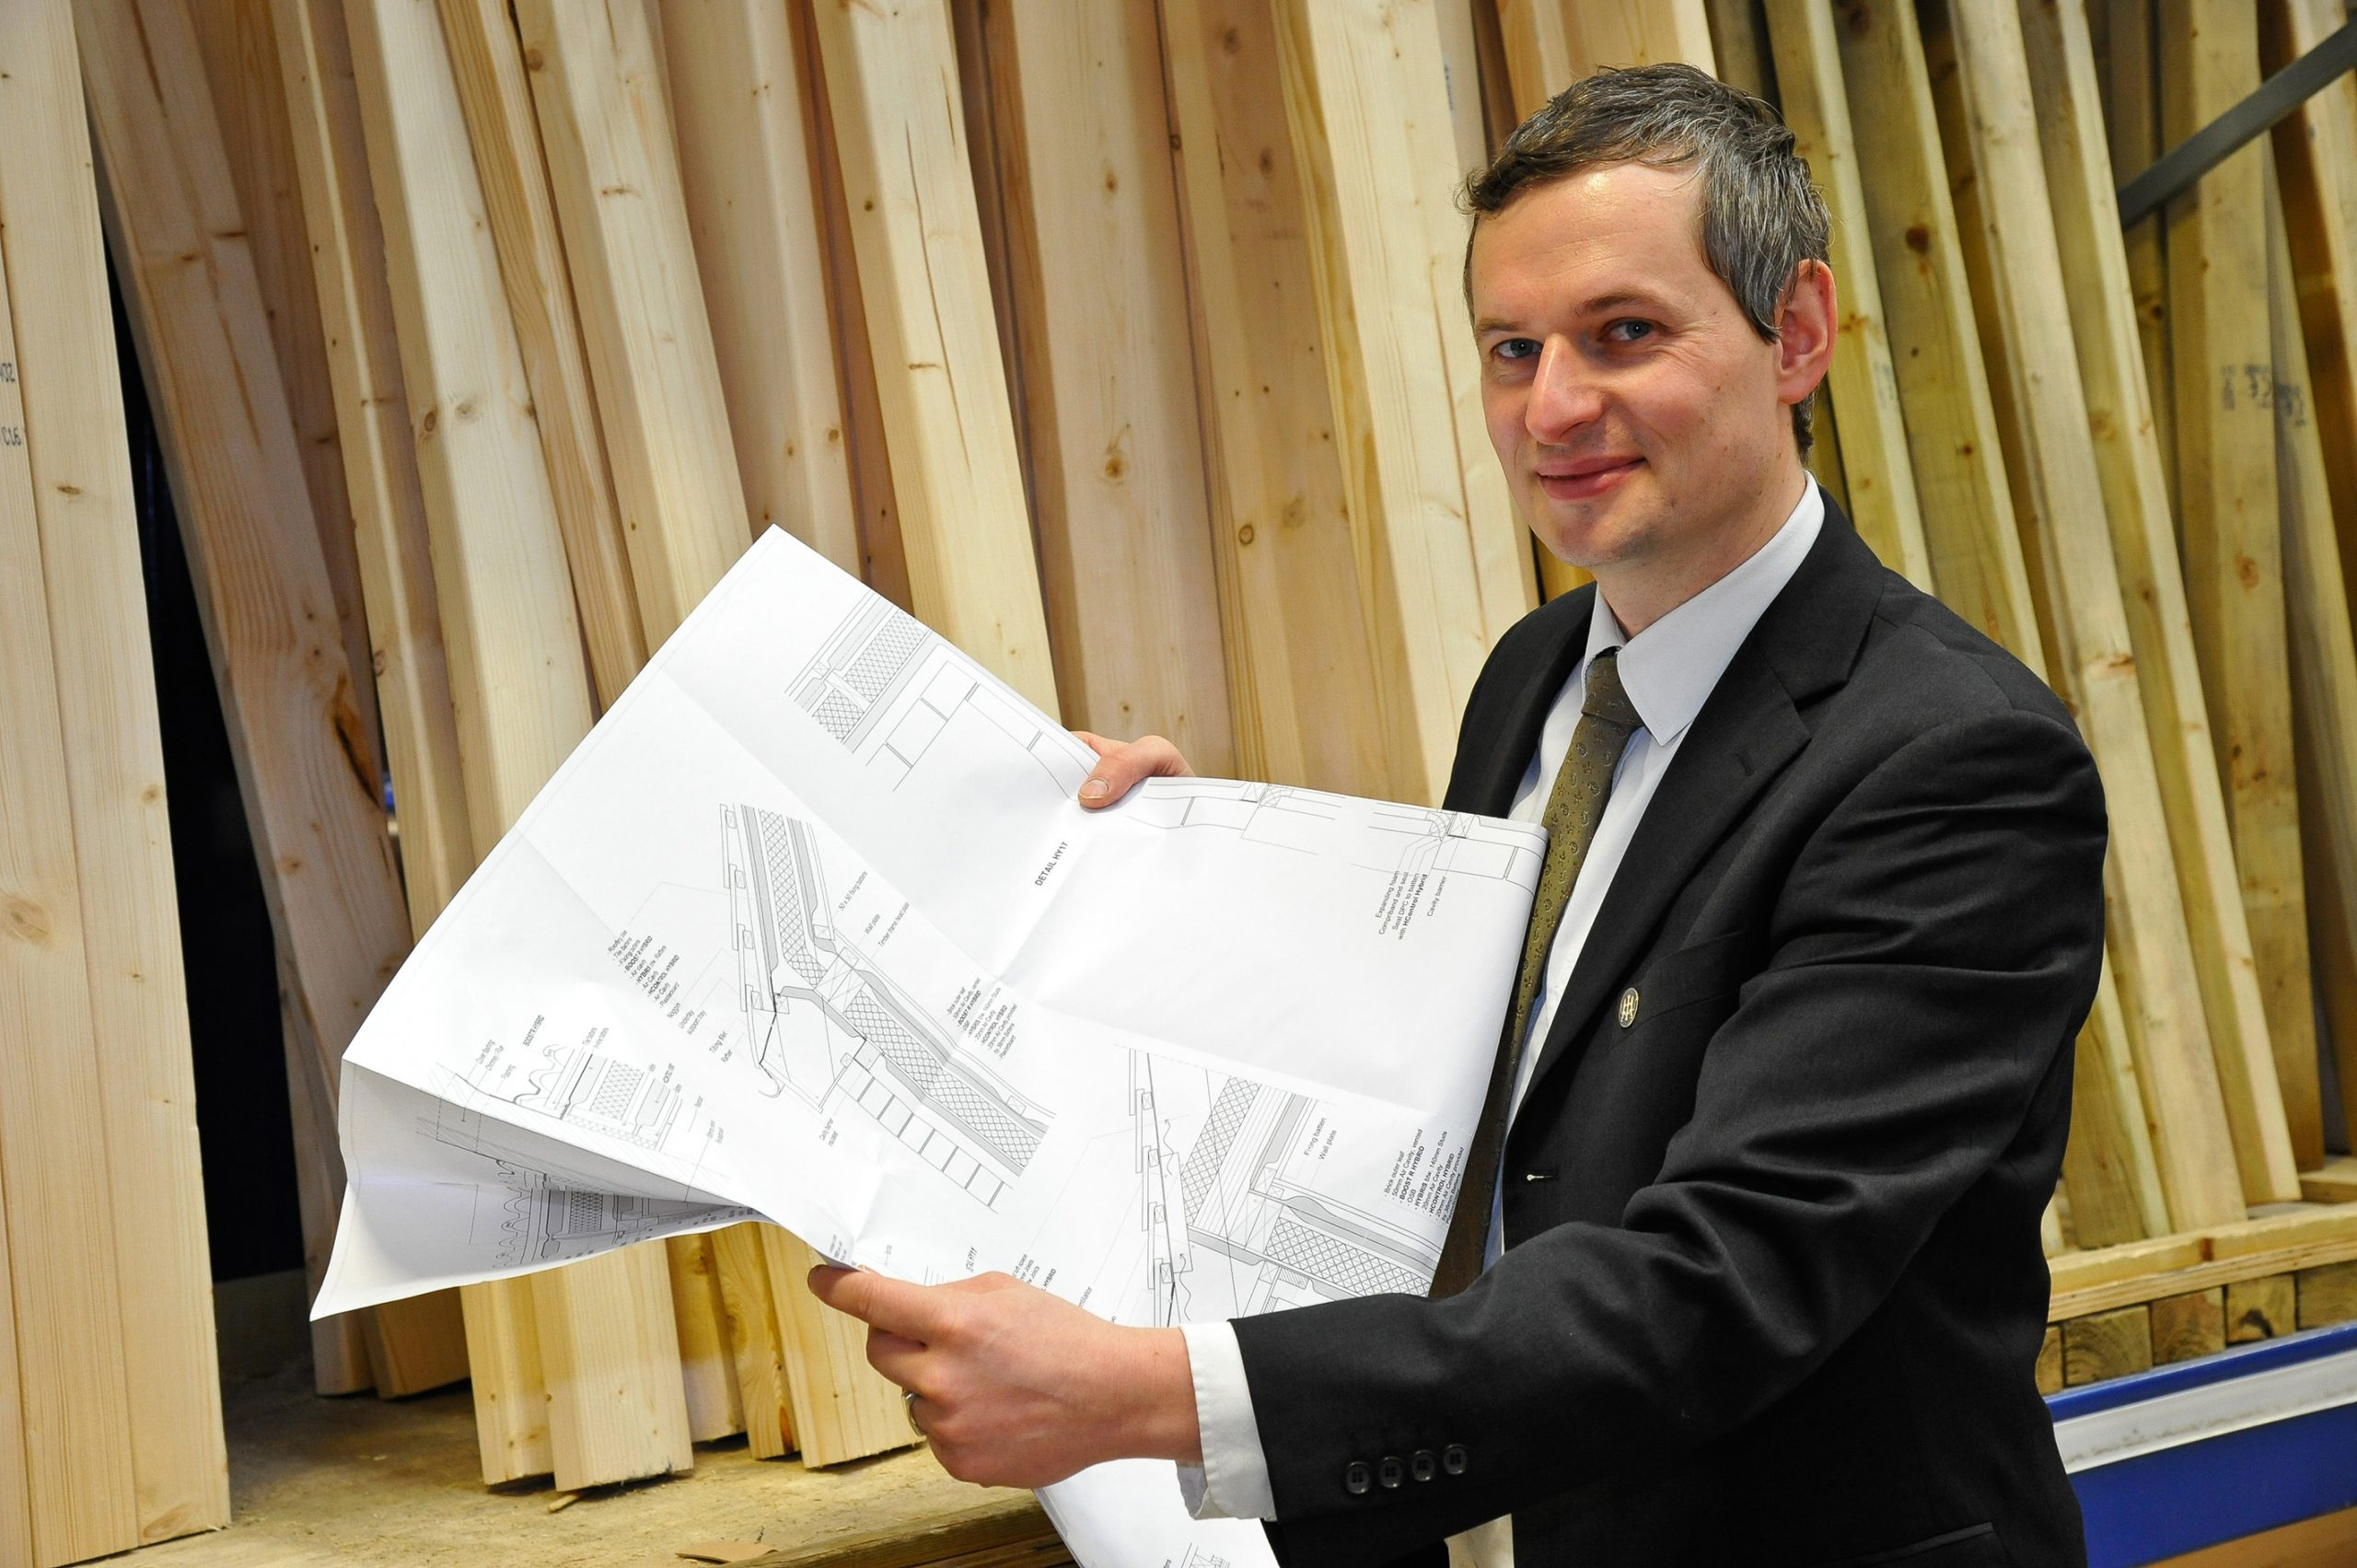 Actis CPD joins stable of RIBA approved training modules